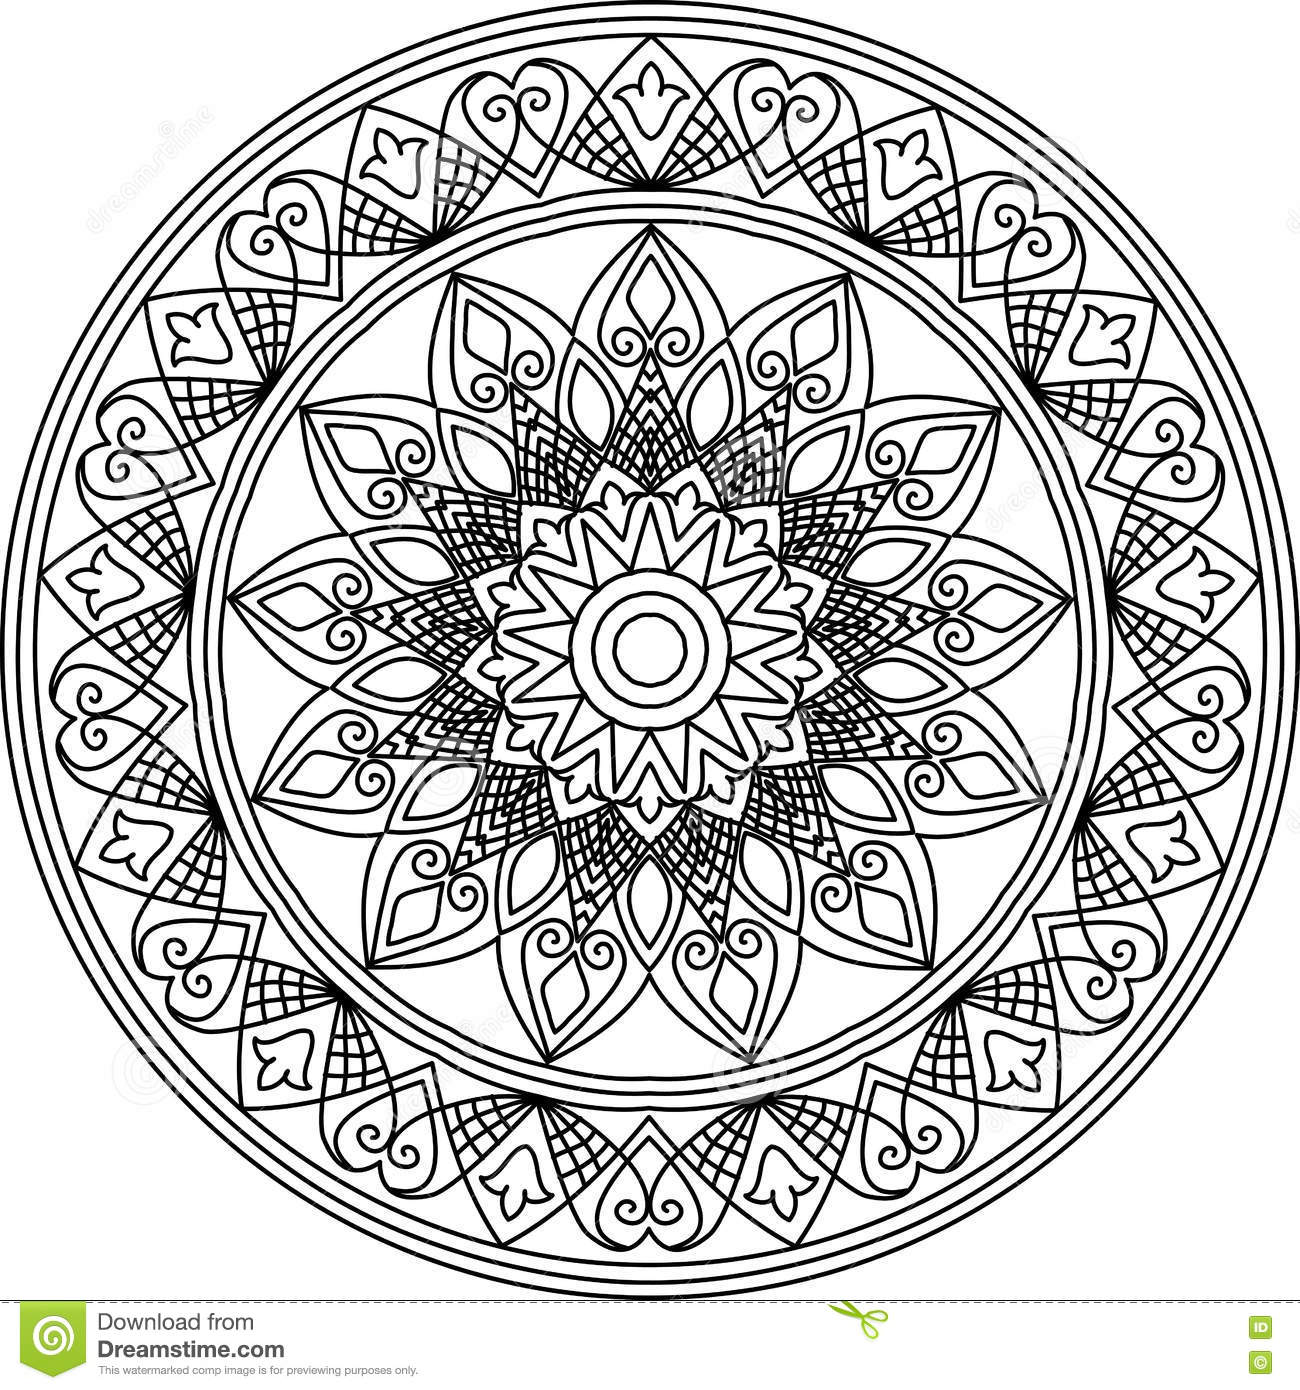 Line Drawing Mandala : Mandala line art cartoon vector cartoondealer